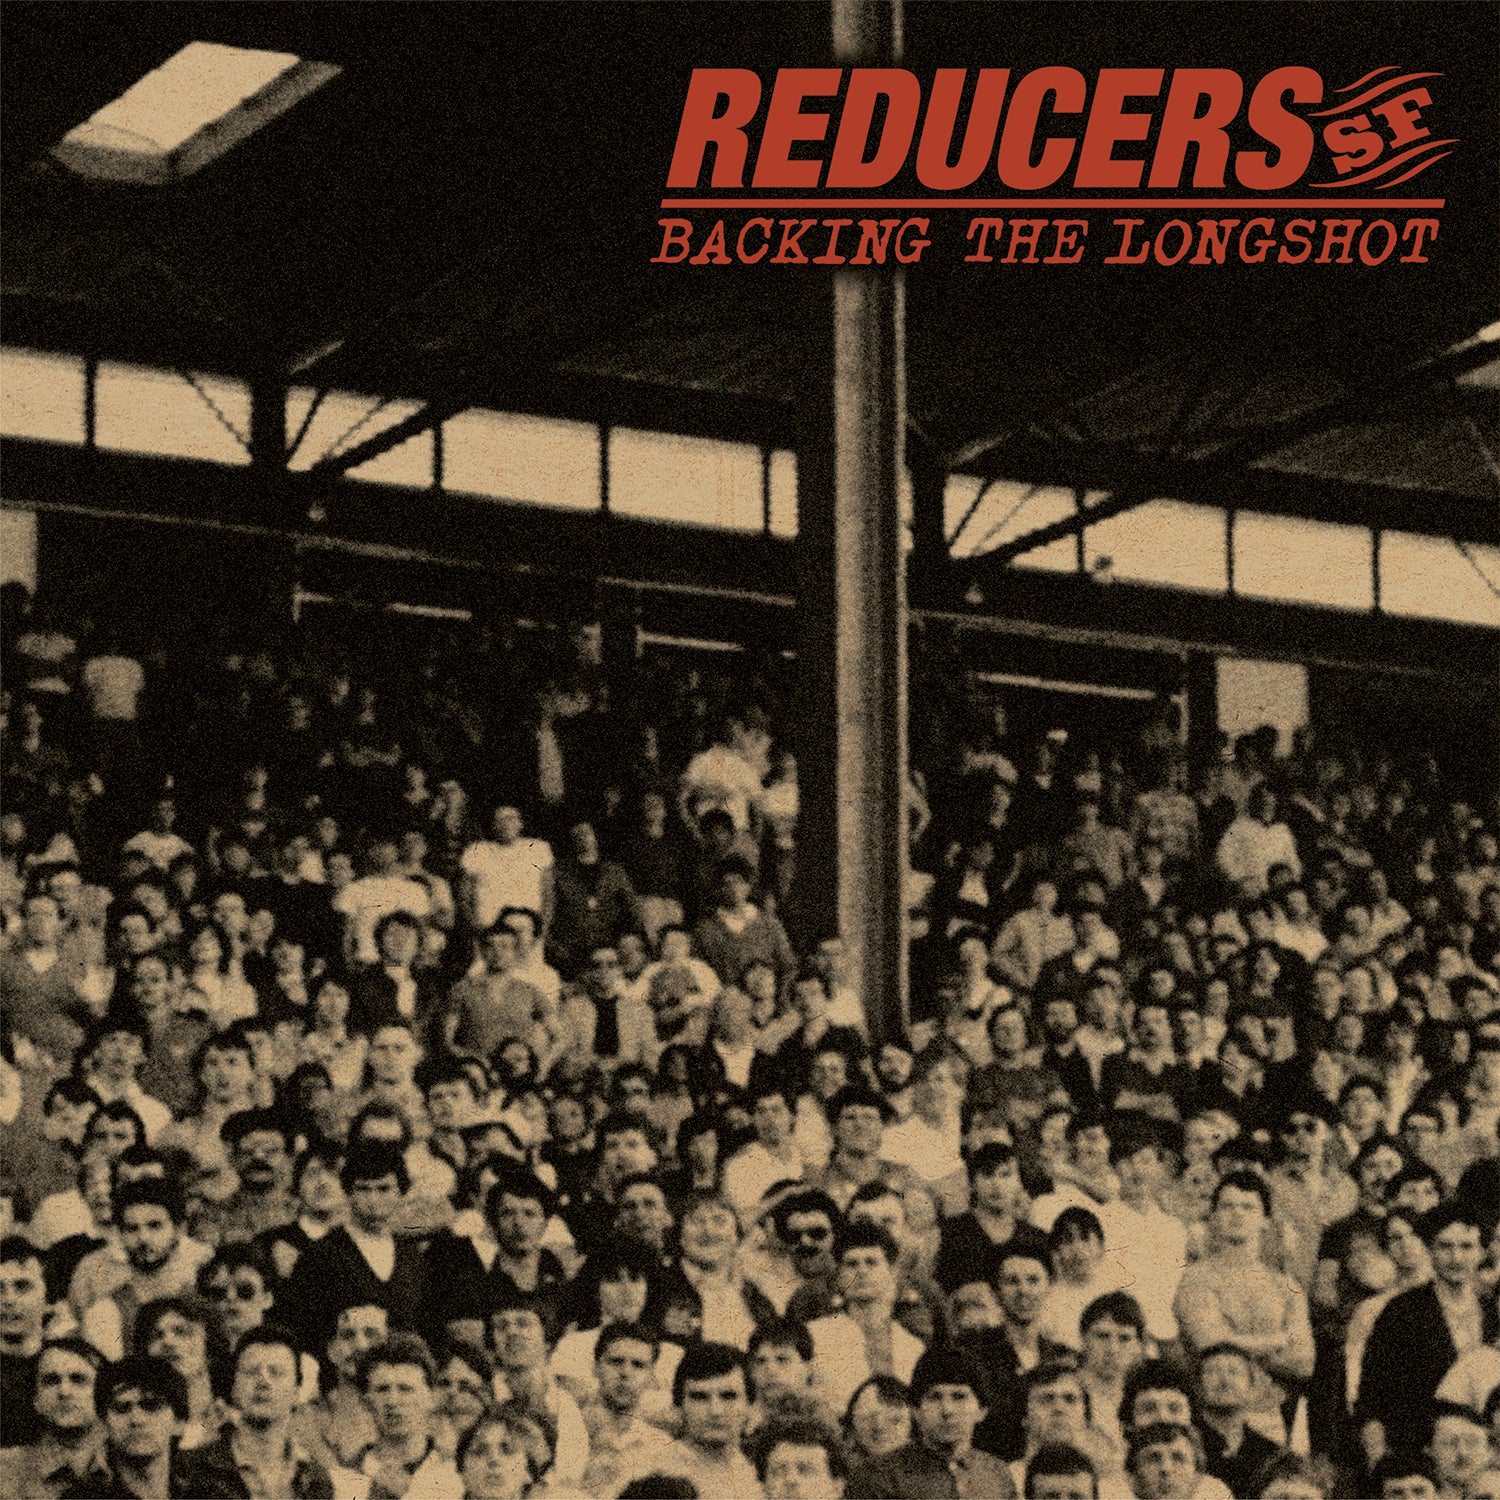 Reducers S.F. - Backing the Longshot LP